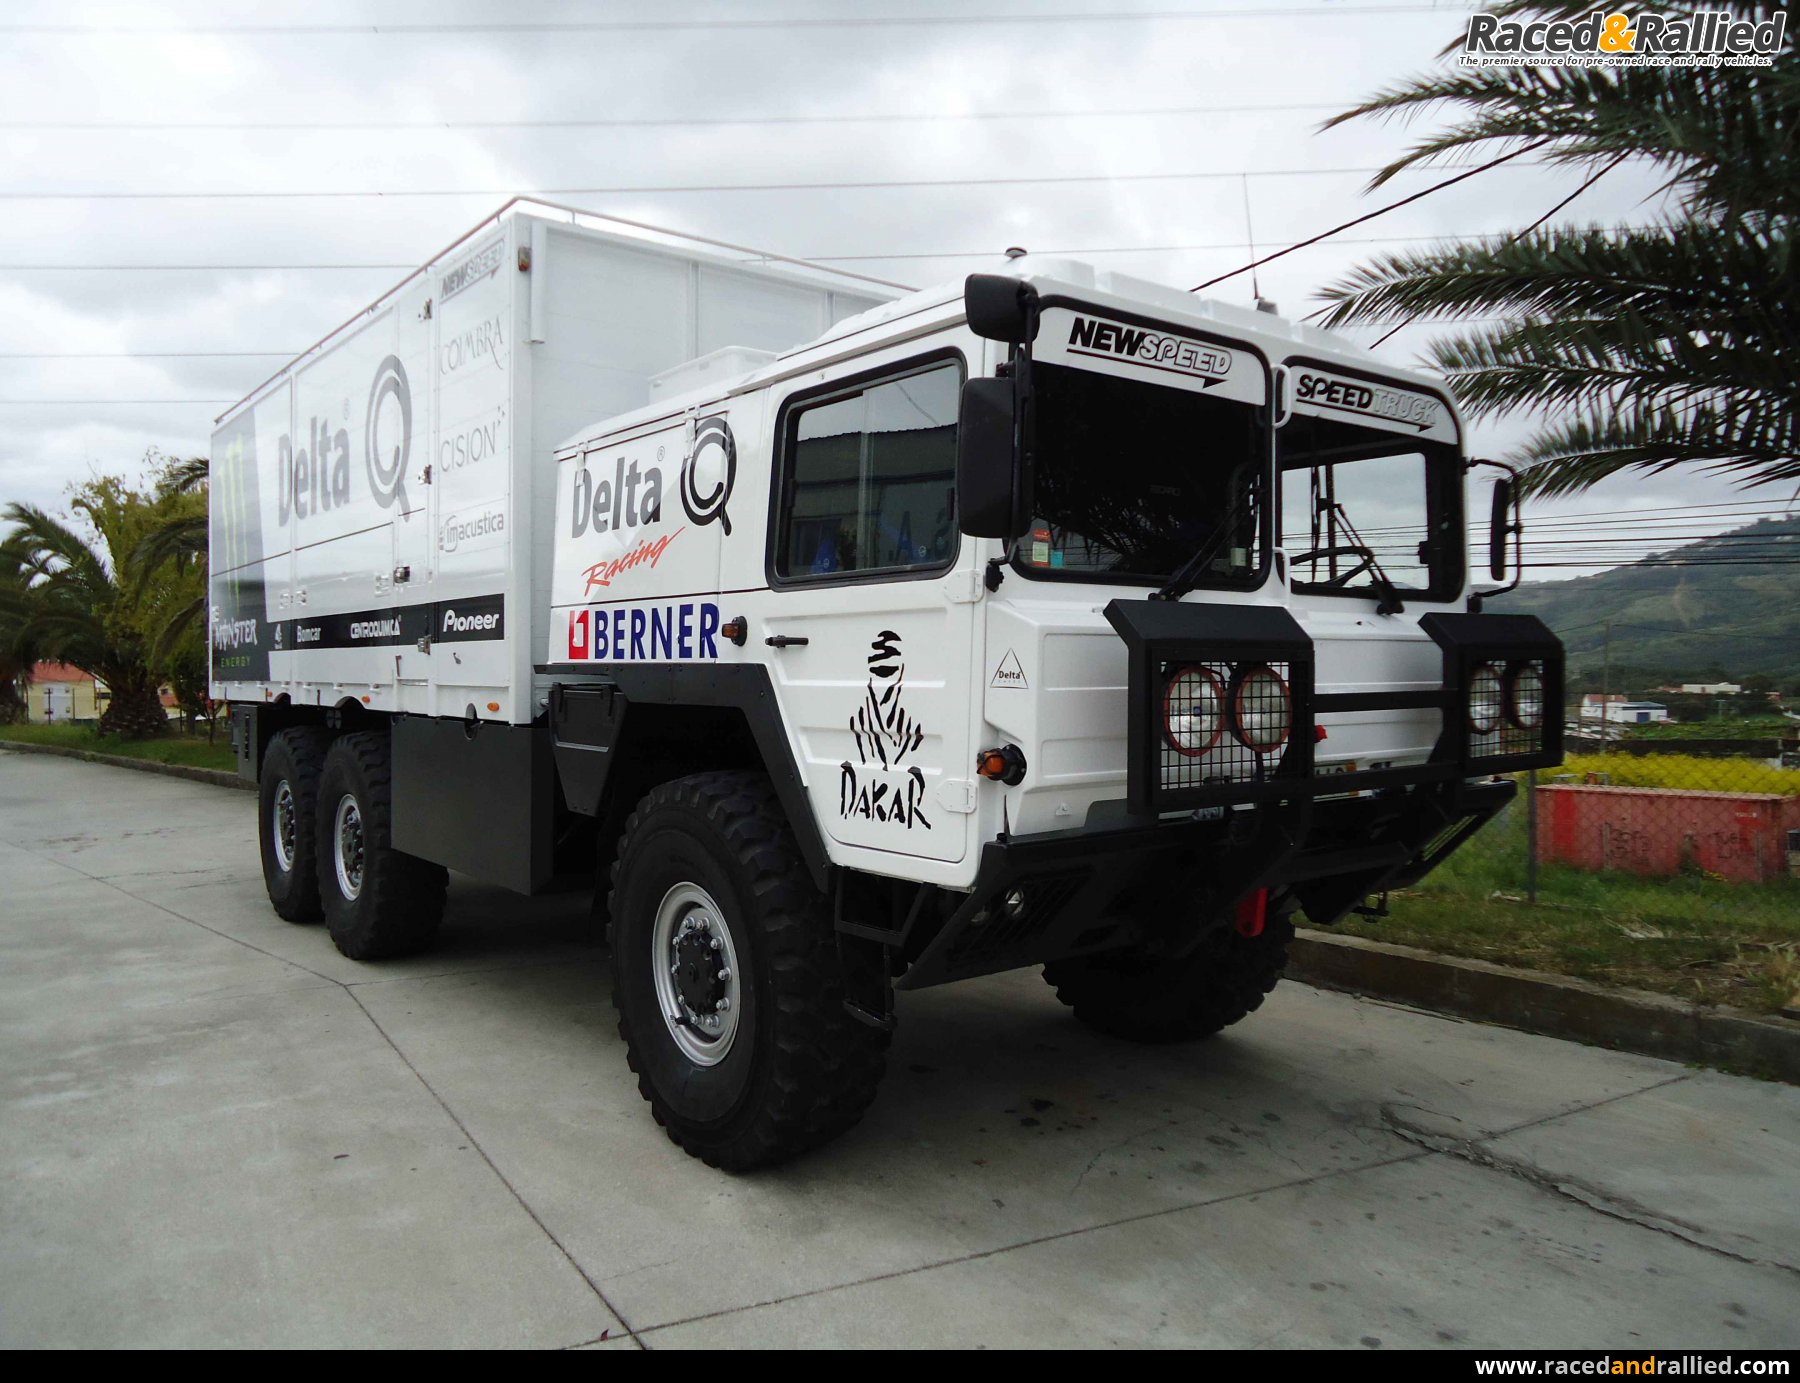 Classic 4X4 Trucks For Sale >> MAN KAT1 - Service Truck | Trailers & Transporters for sale at Raced & Rallied | rally cars for ...